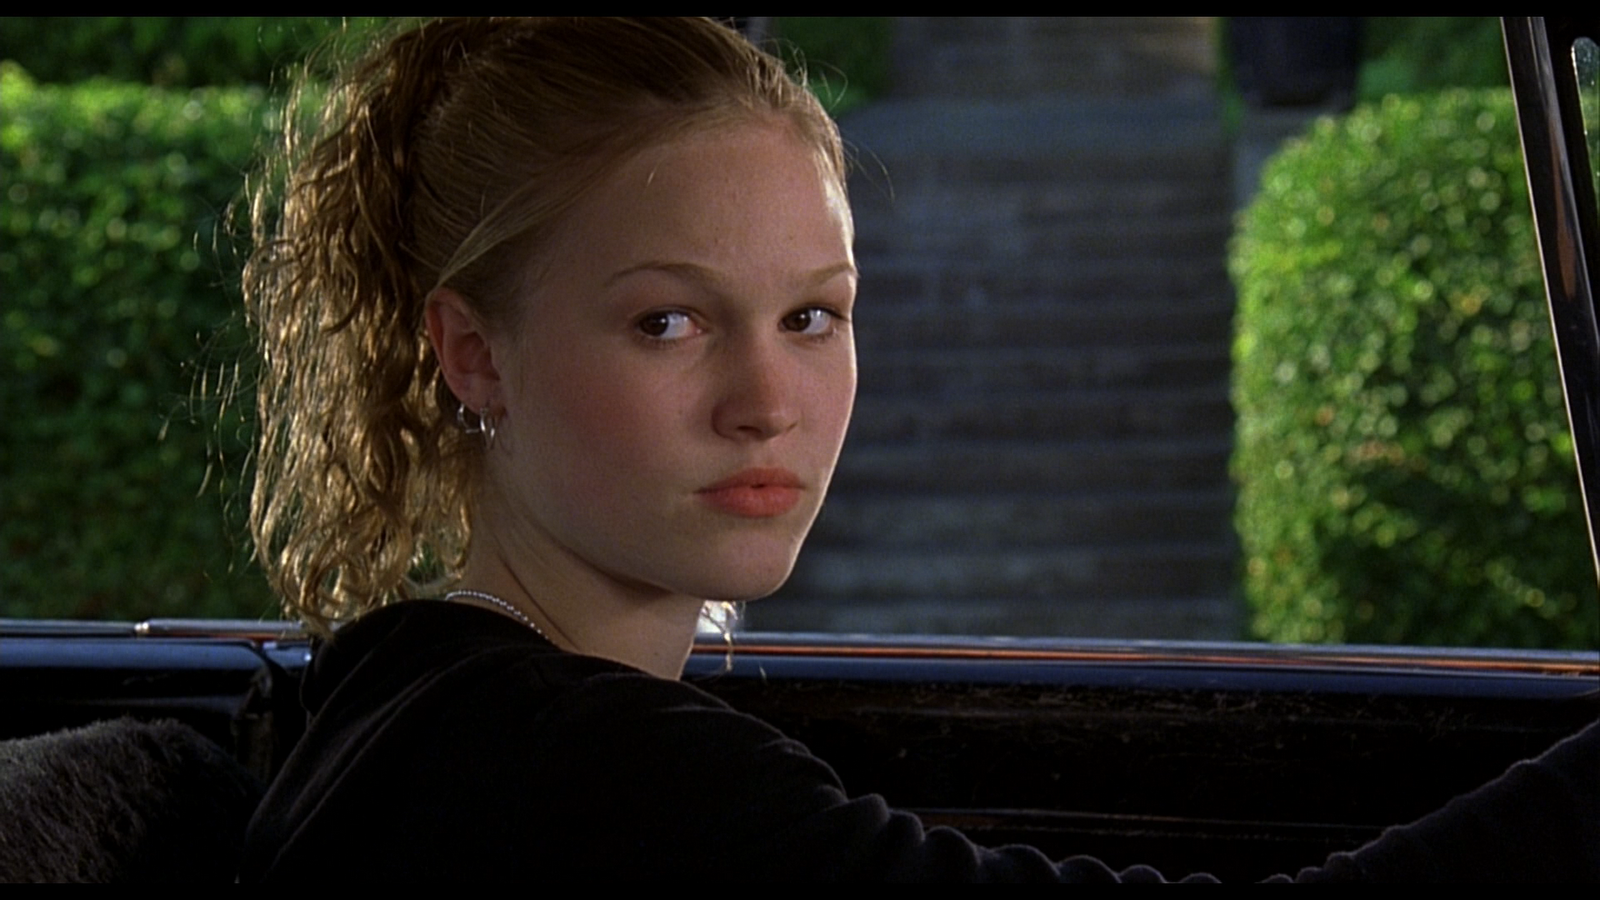 10 Things I Hate About You Soundtrack: What Would The Soundtrack To '10 Things I Hate About You